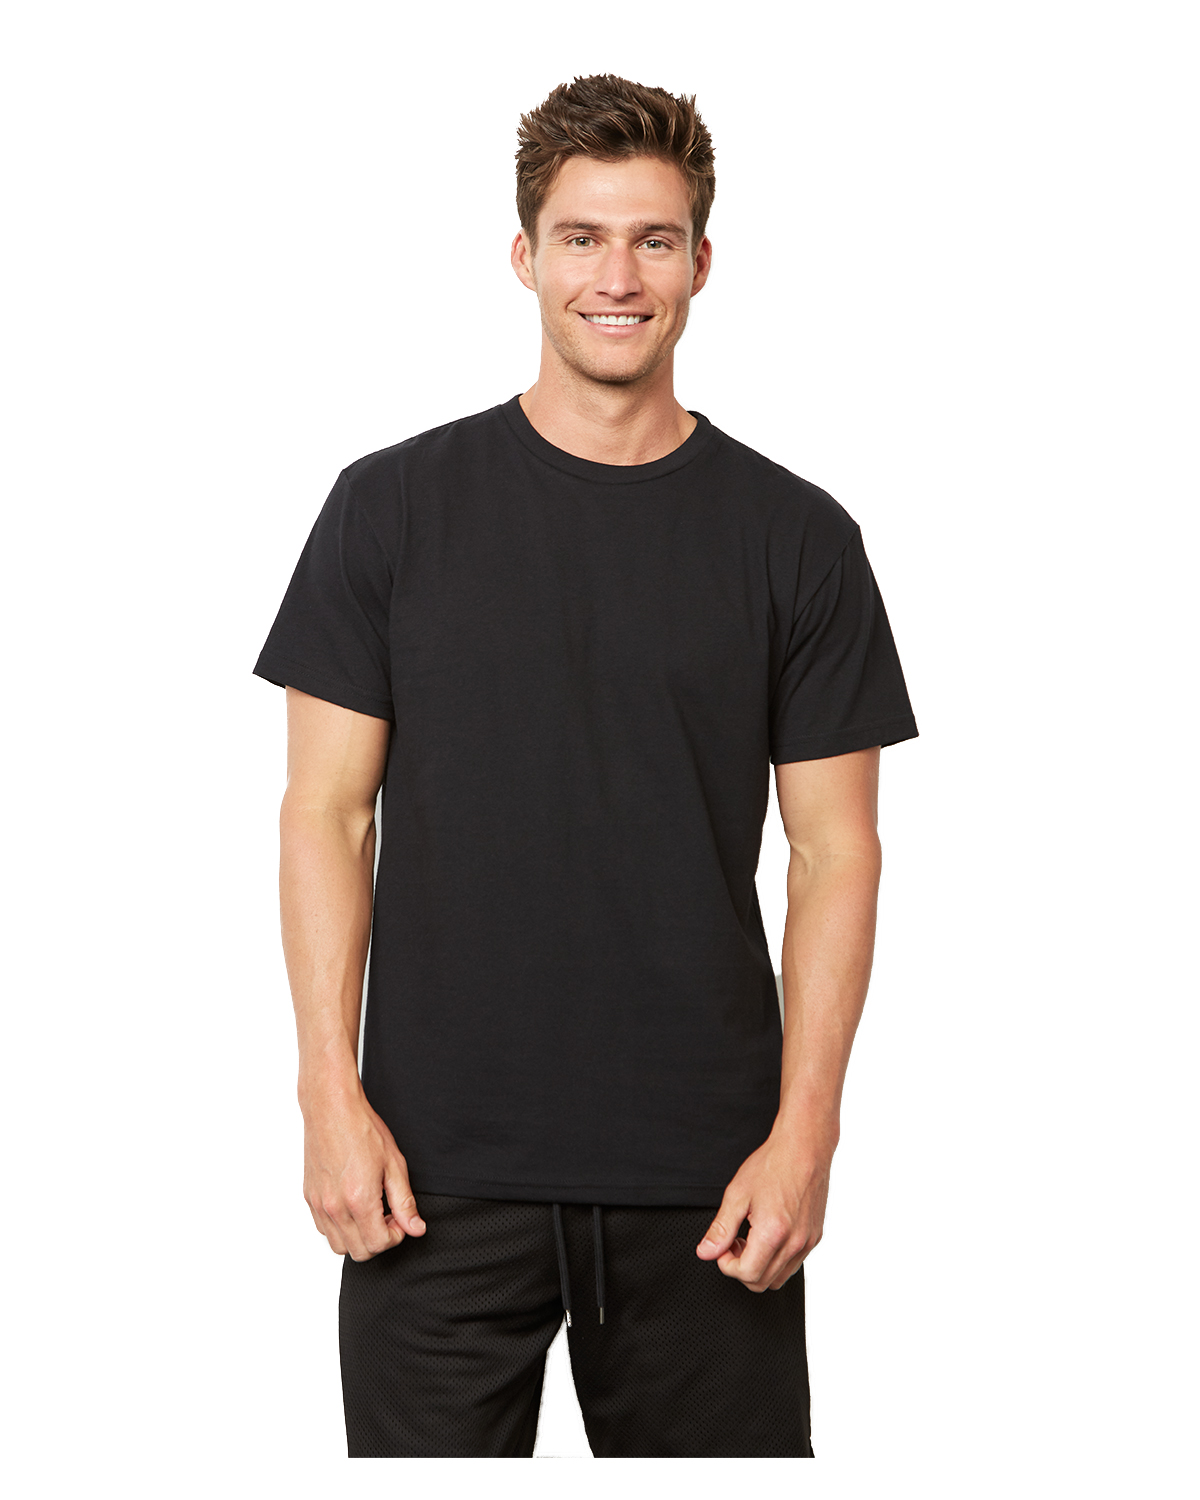 Next Level Apparel 4600 - Unisex Eco Heavyweight T-Shirt